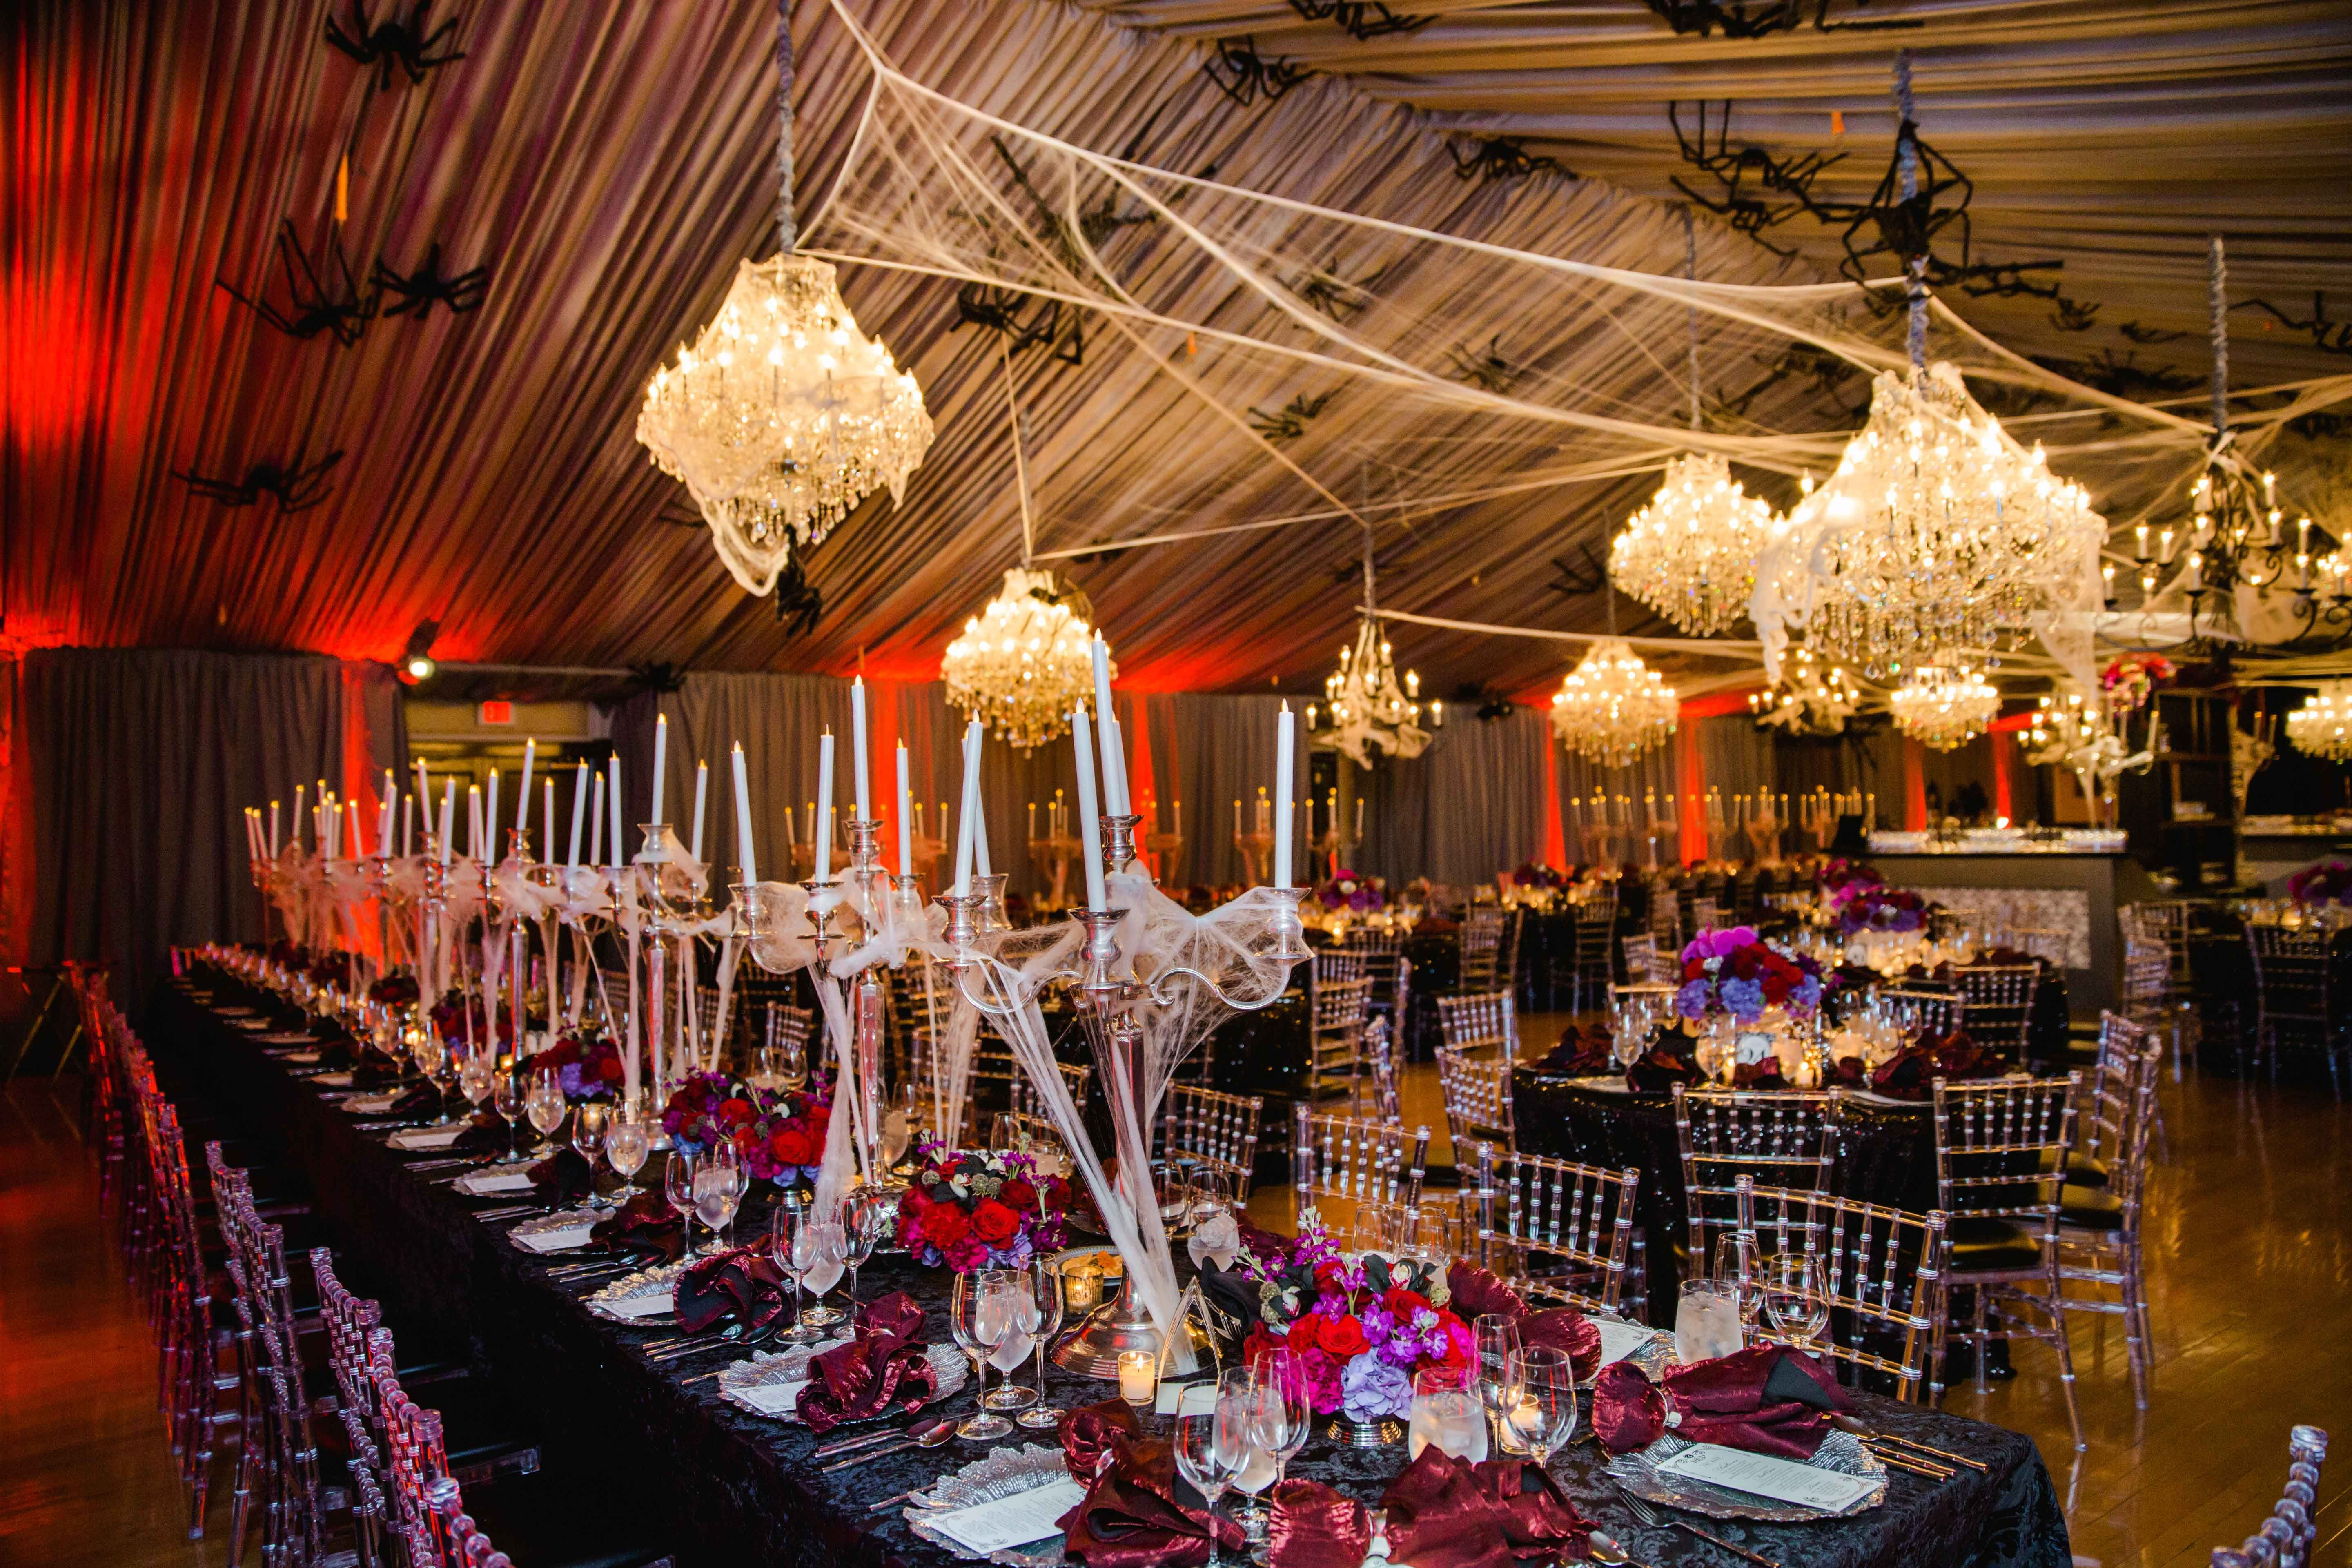 Discover A Stylish Halloween Themed Real Wedding Halloween Themed Wedding Halloween Wedding Stylish Halloween